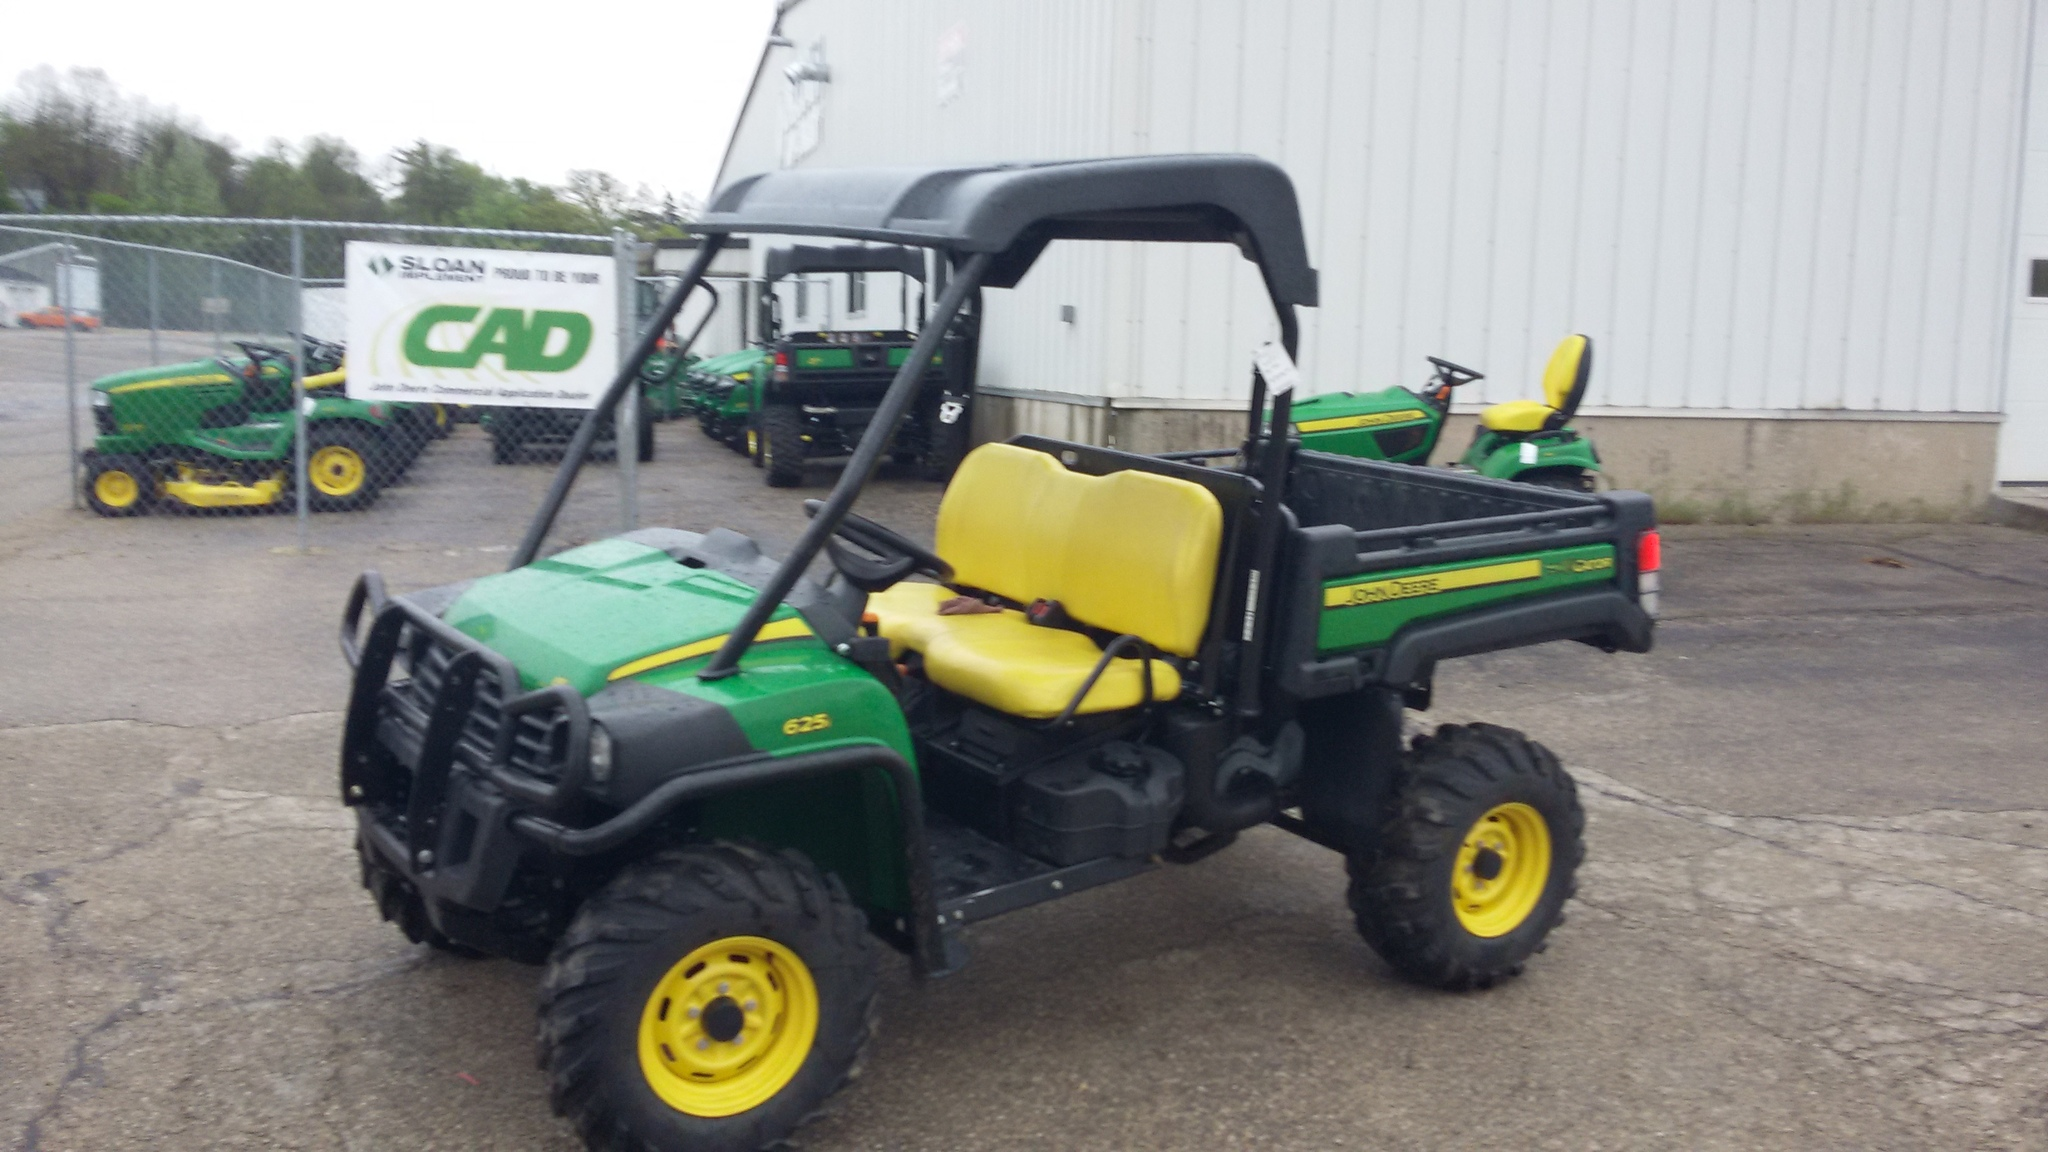 john deere xuv 625i green atvs gators for sale 59042. Black Bedroom Furniture Sets. Home Design Ideas